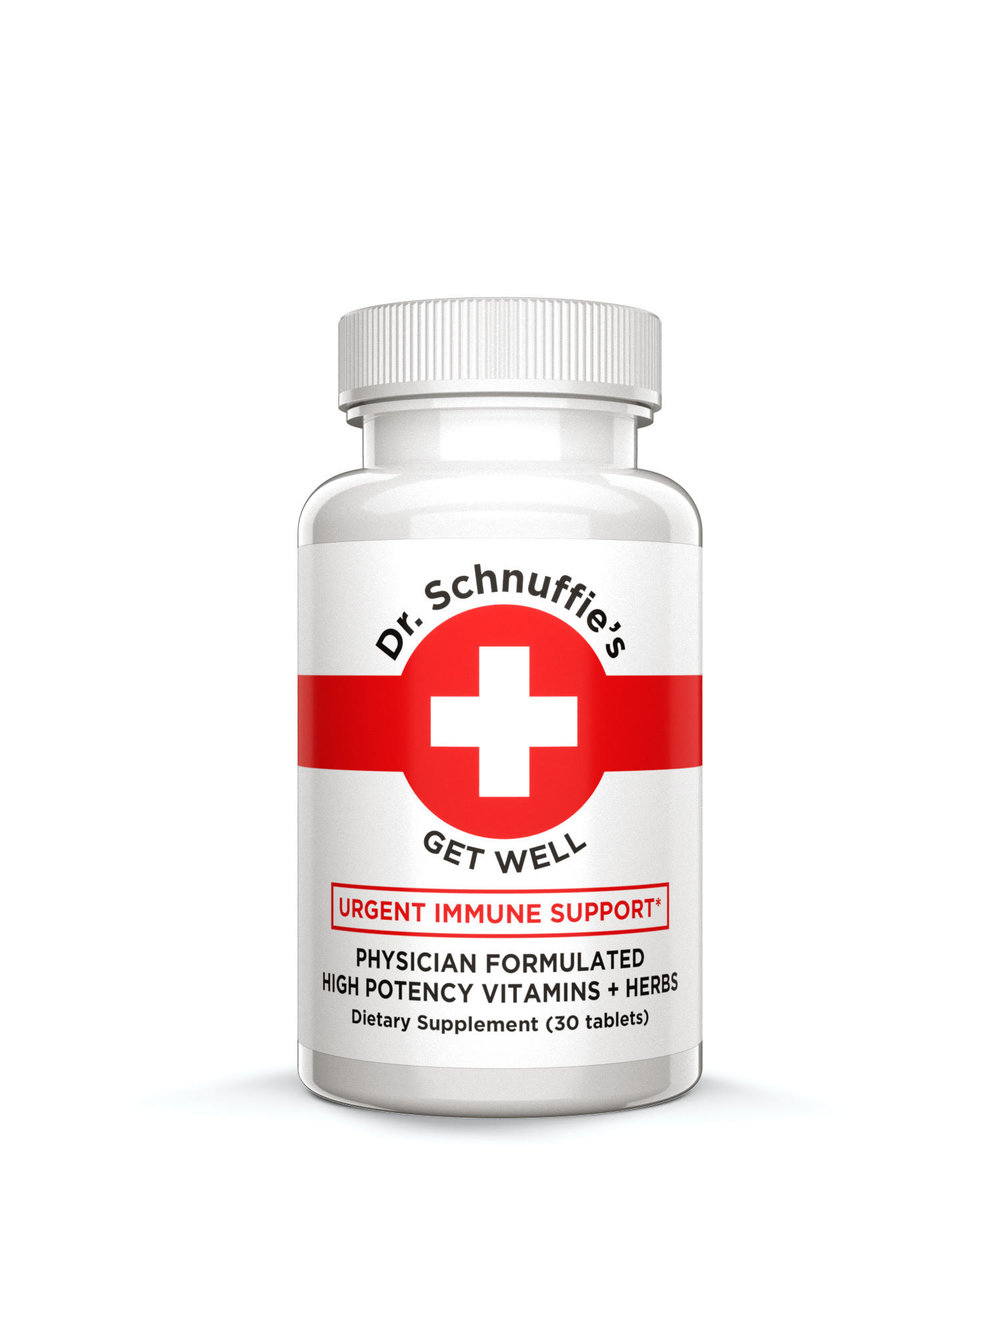 Dr Schnuffies Wellness FormulamNatural Cold and Flu Remedy Prevention Top Health Product